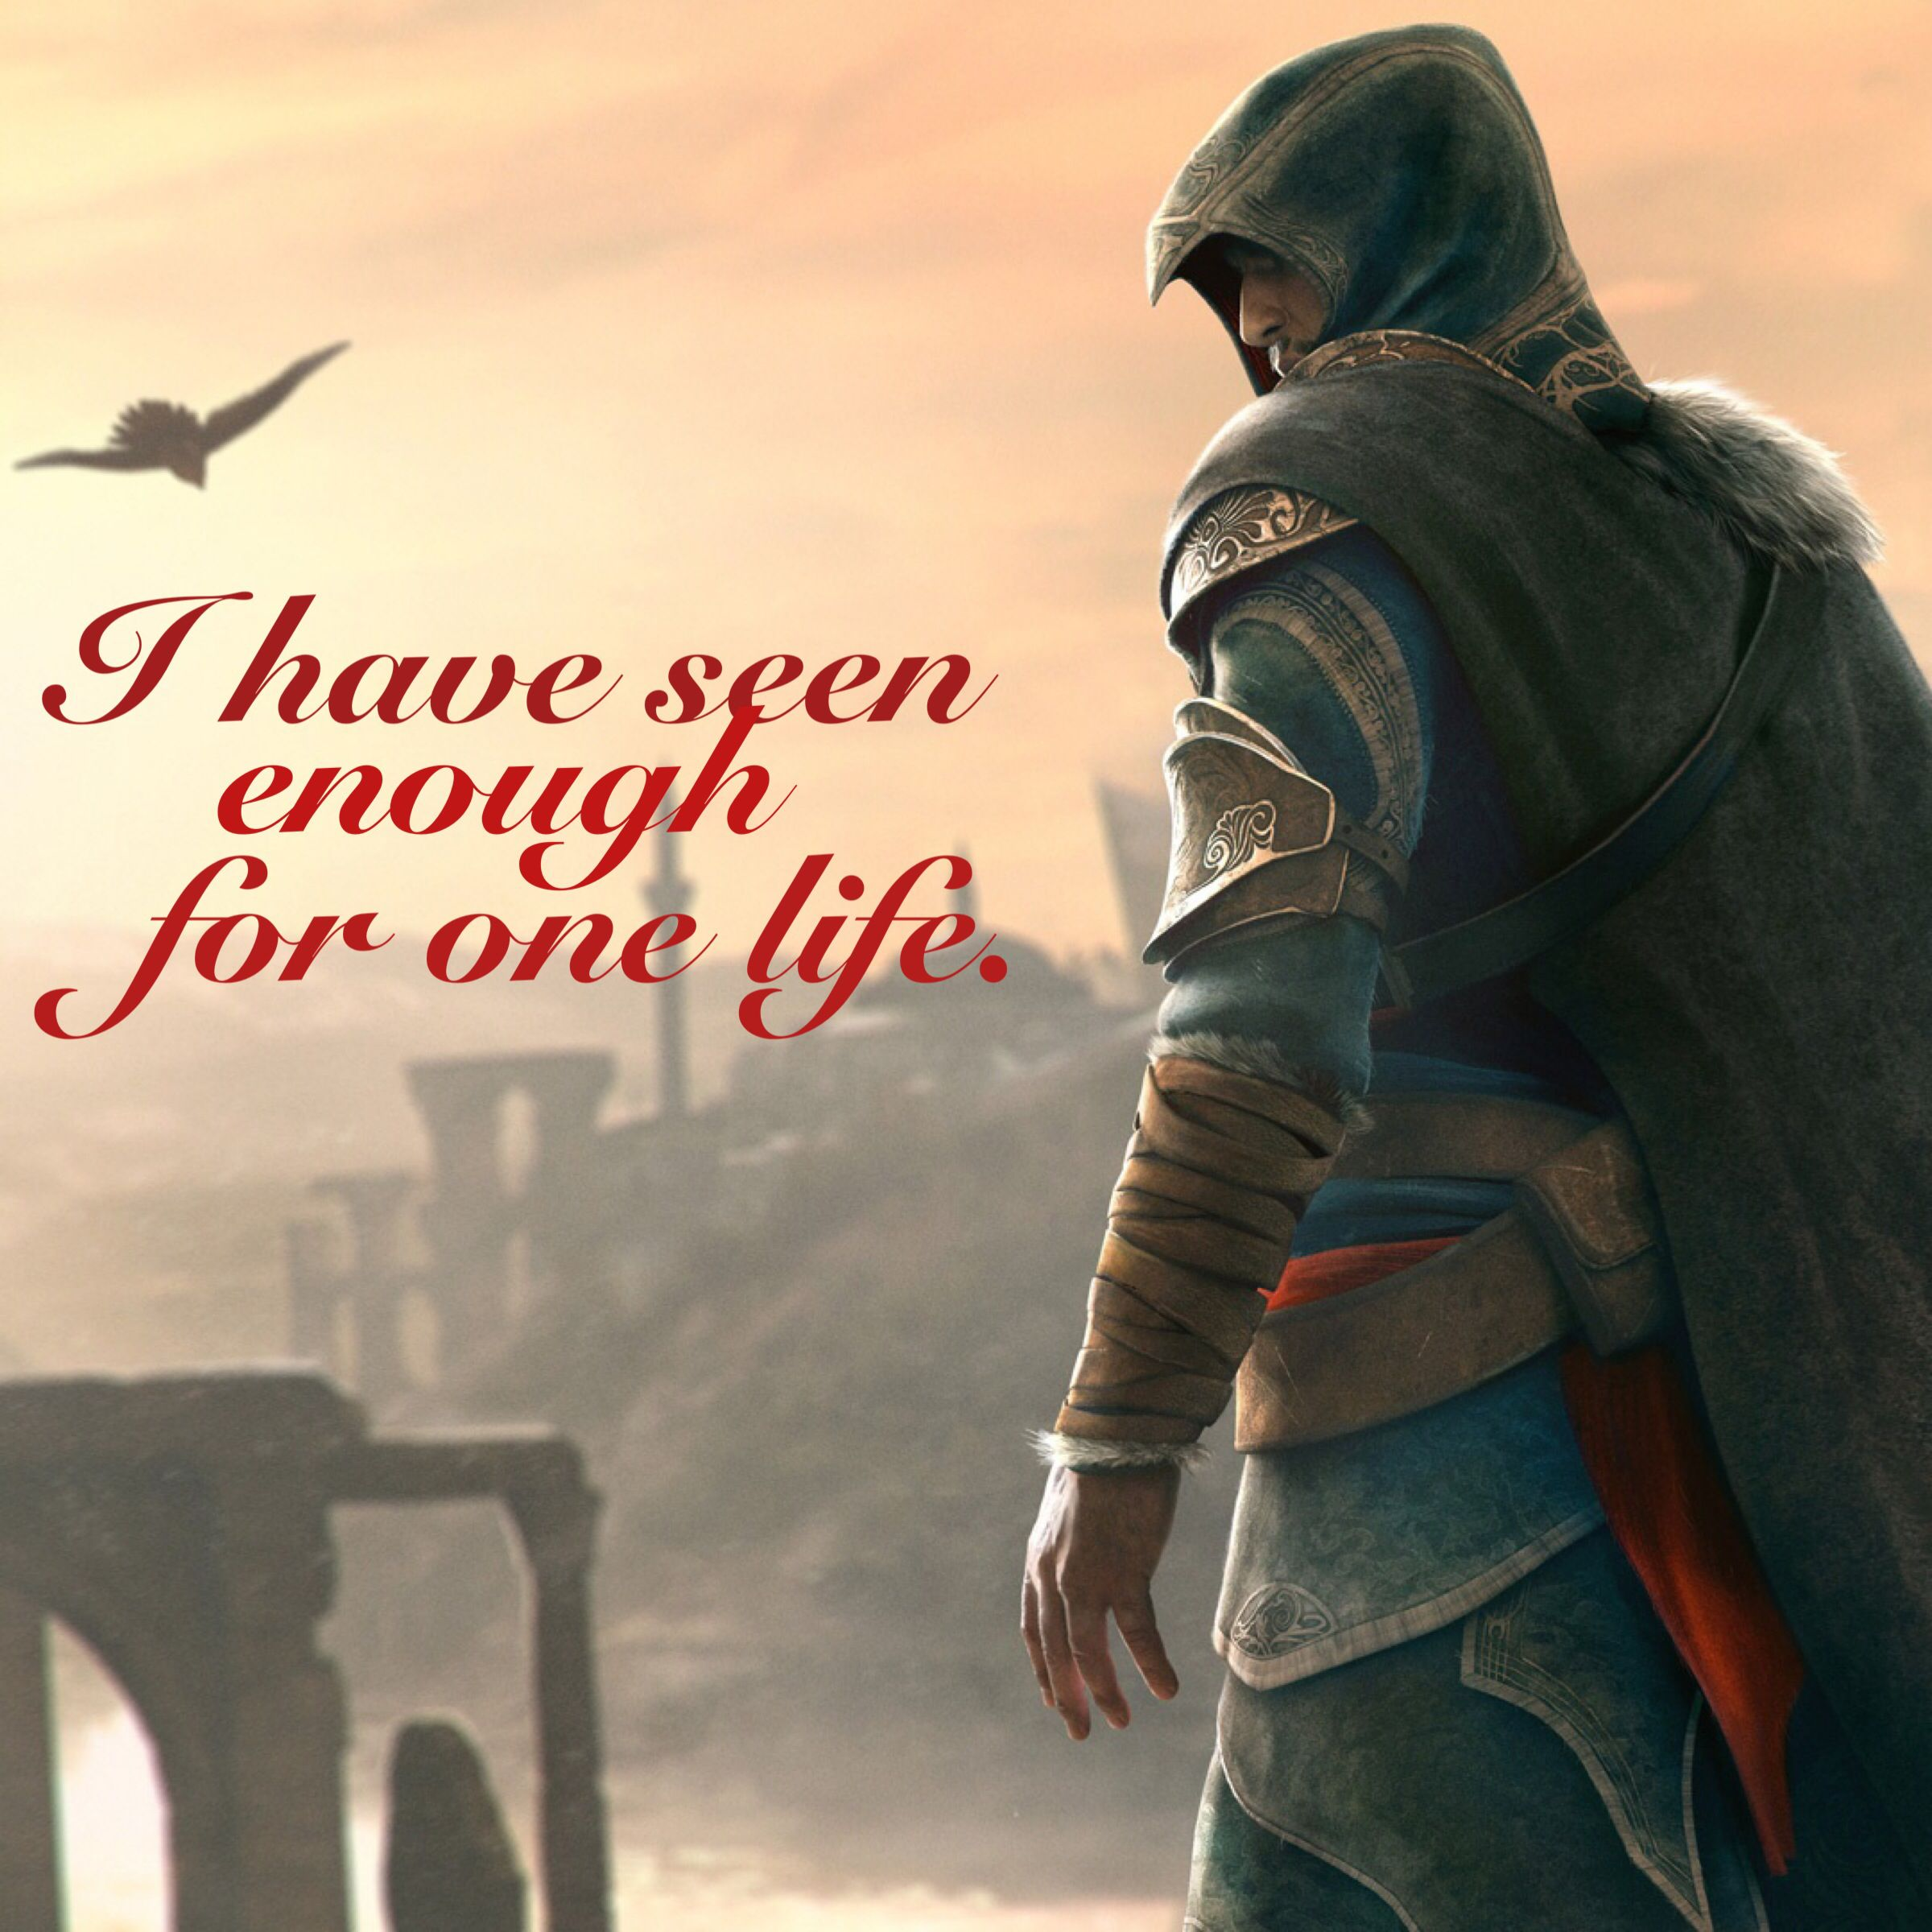 Assassin's Creed quote wallpaper, Assassin's Creed